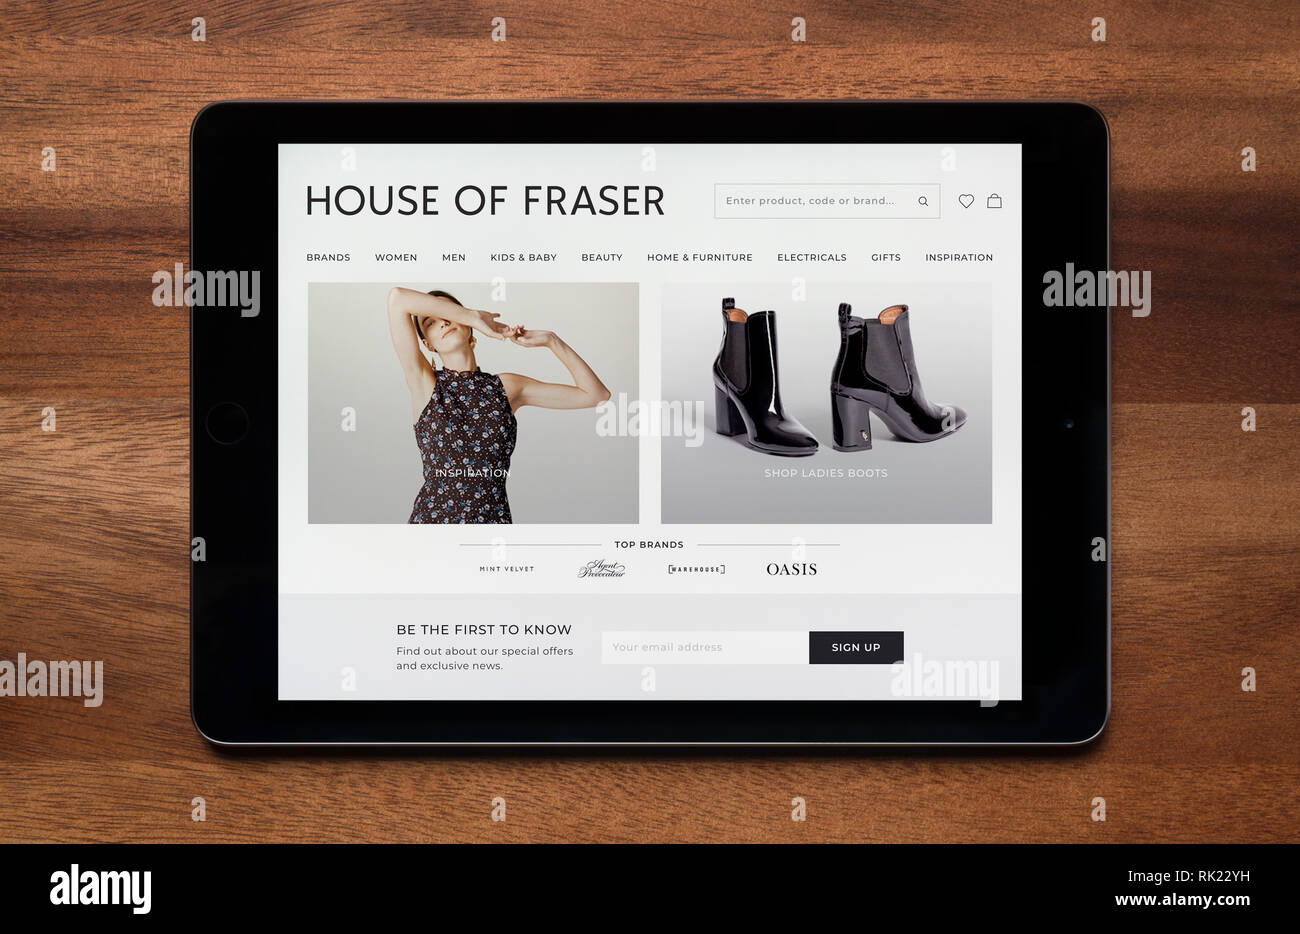 The website of House of Fraser is seen on an iPad tablet, which is resting on a wooden table (Editorial use only). - Stock Image